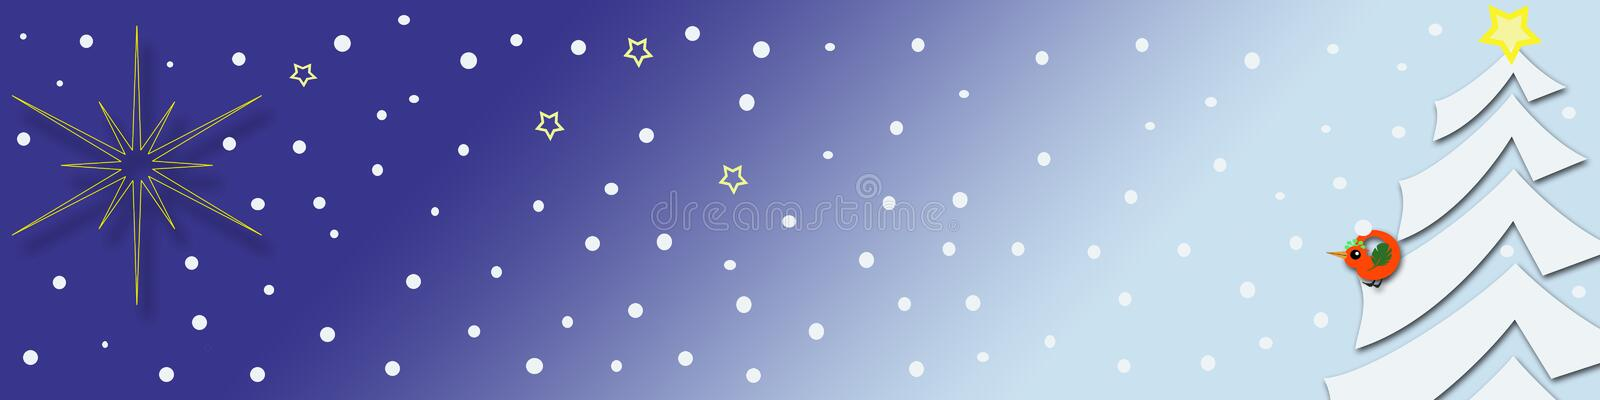 Decorative christmas banner. Decorative christmas / seasonal banner with a bright shining star, a stylish christmas tree and a cute little bird royalty free illustration